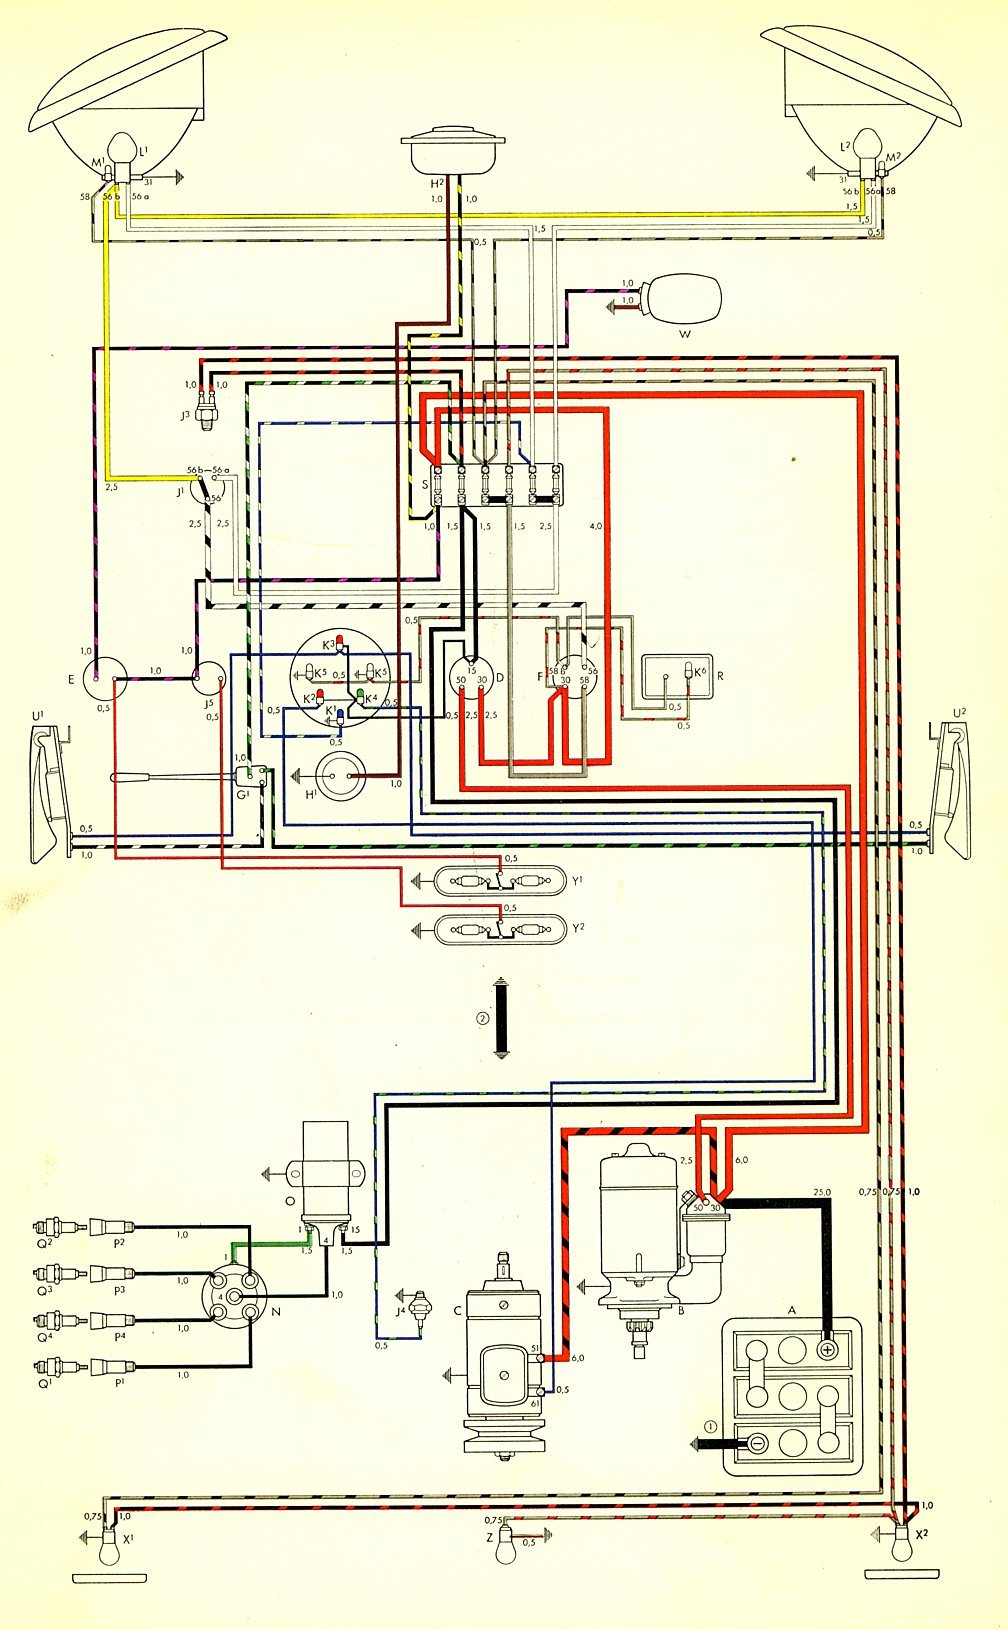 bus_59 thesamba com type 2 wiring diagrams 1987 suzuki lt80 wiring diagram at gsmportal.co